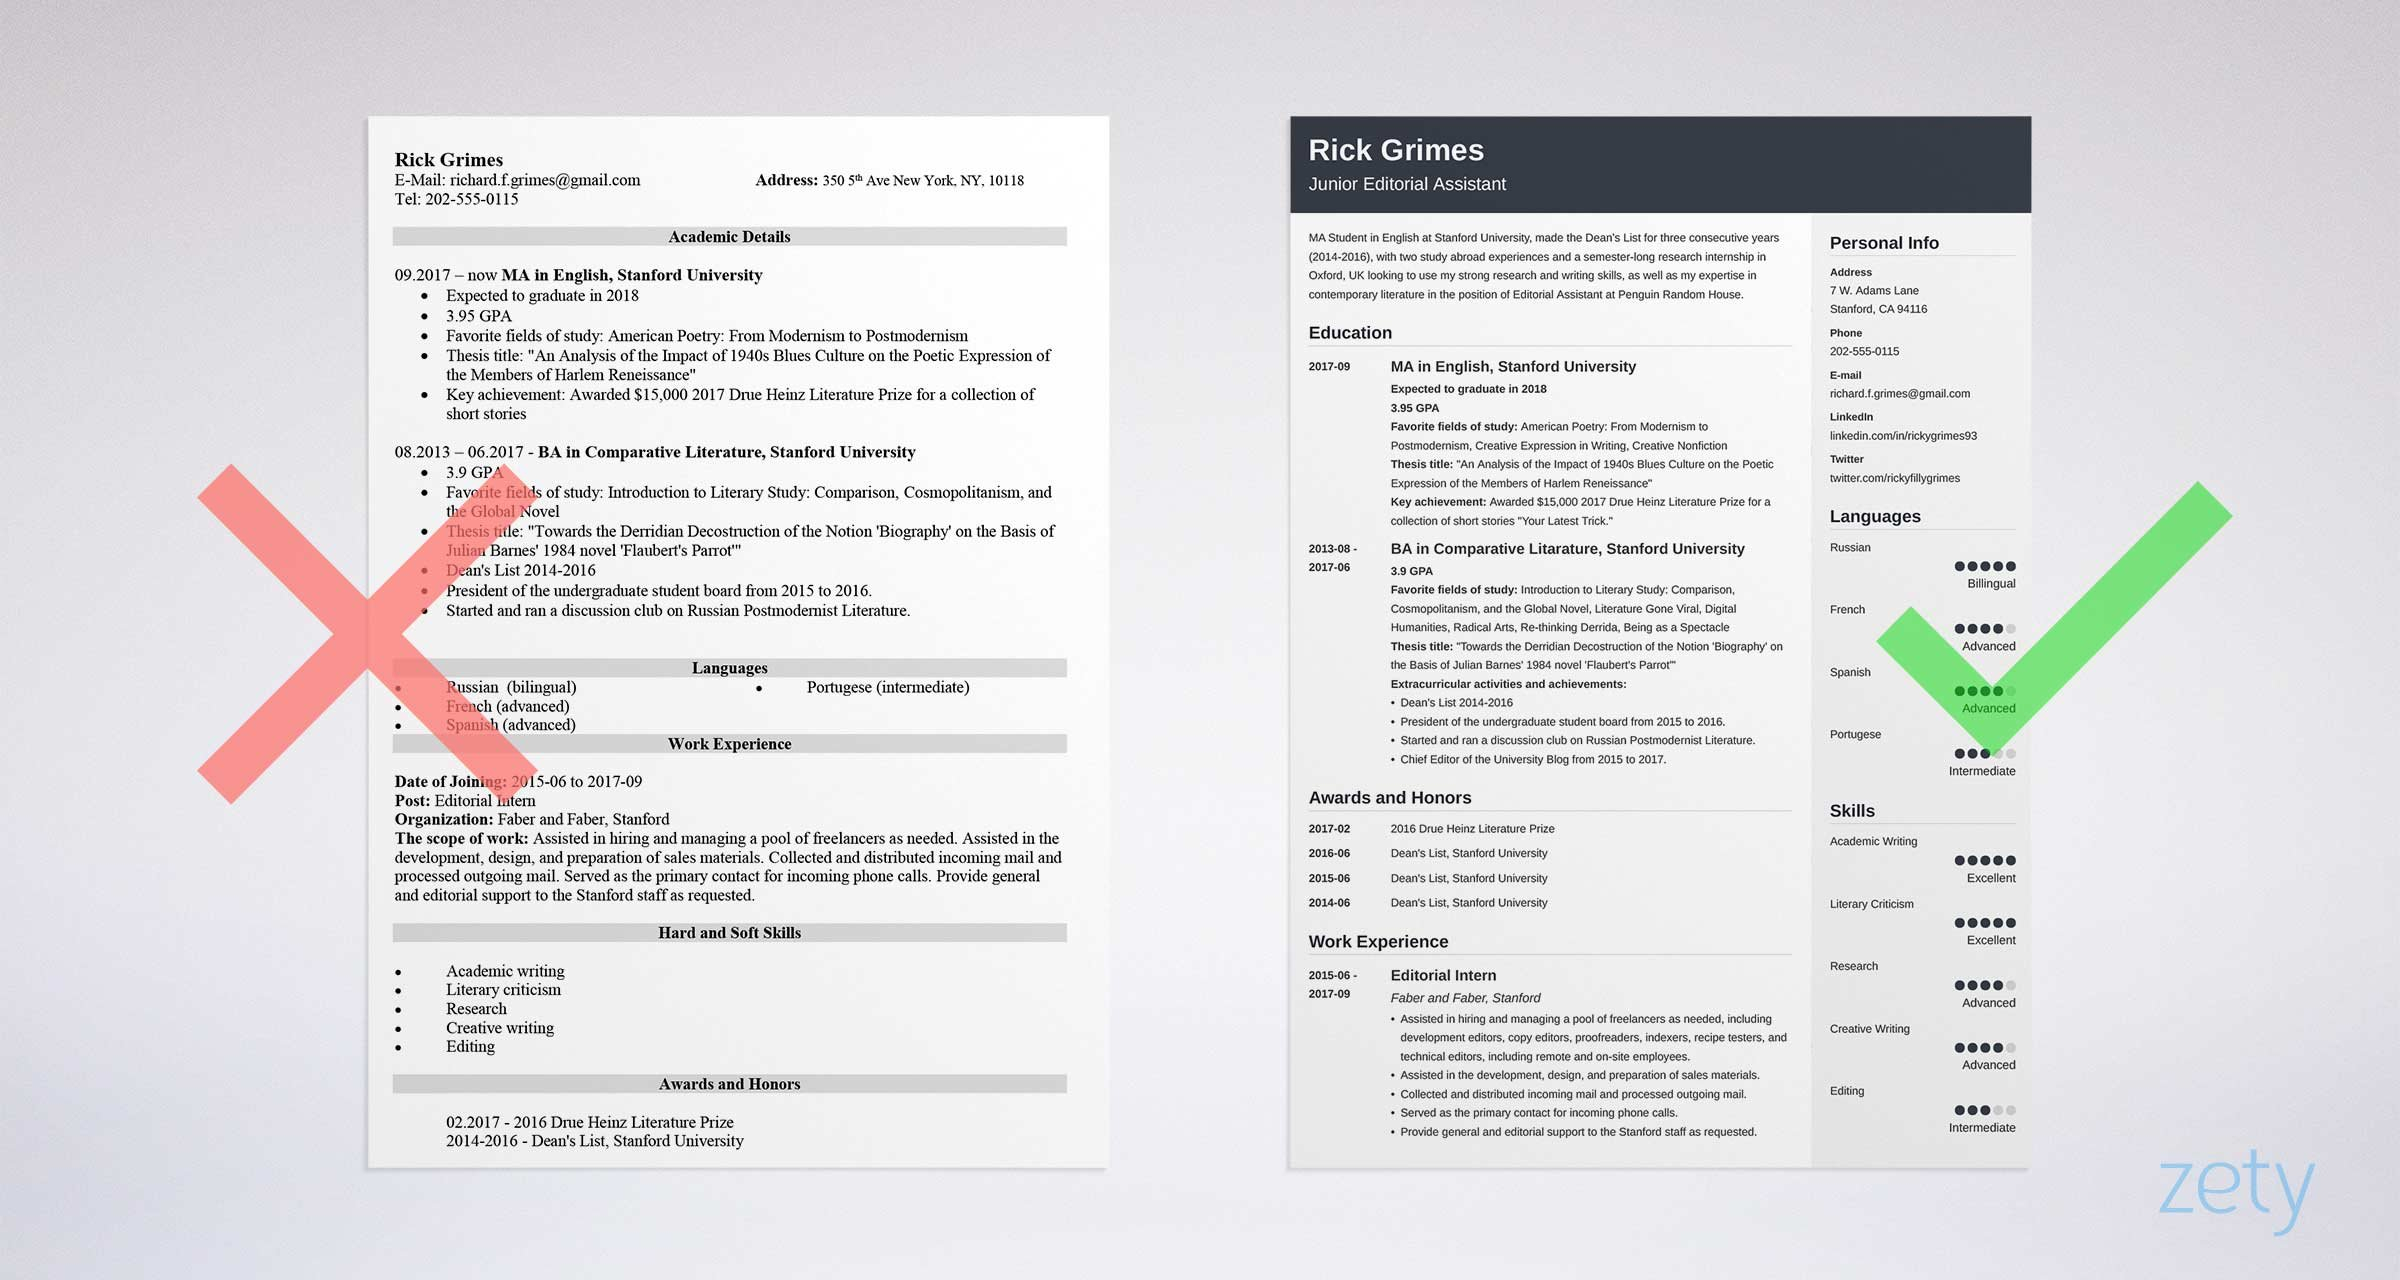 Chronological Resume Template 2018 - Entry Level Resume Sample and Plete Guide [ 20 Examples]